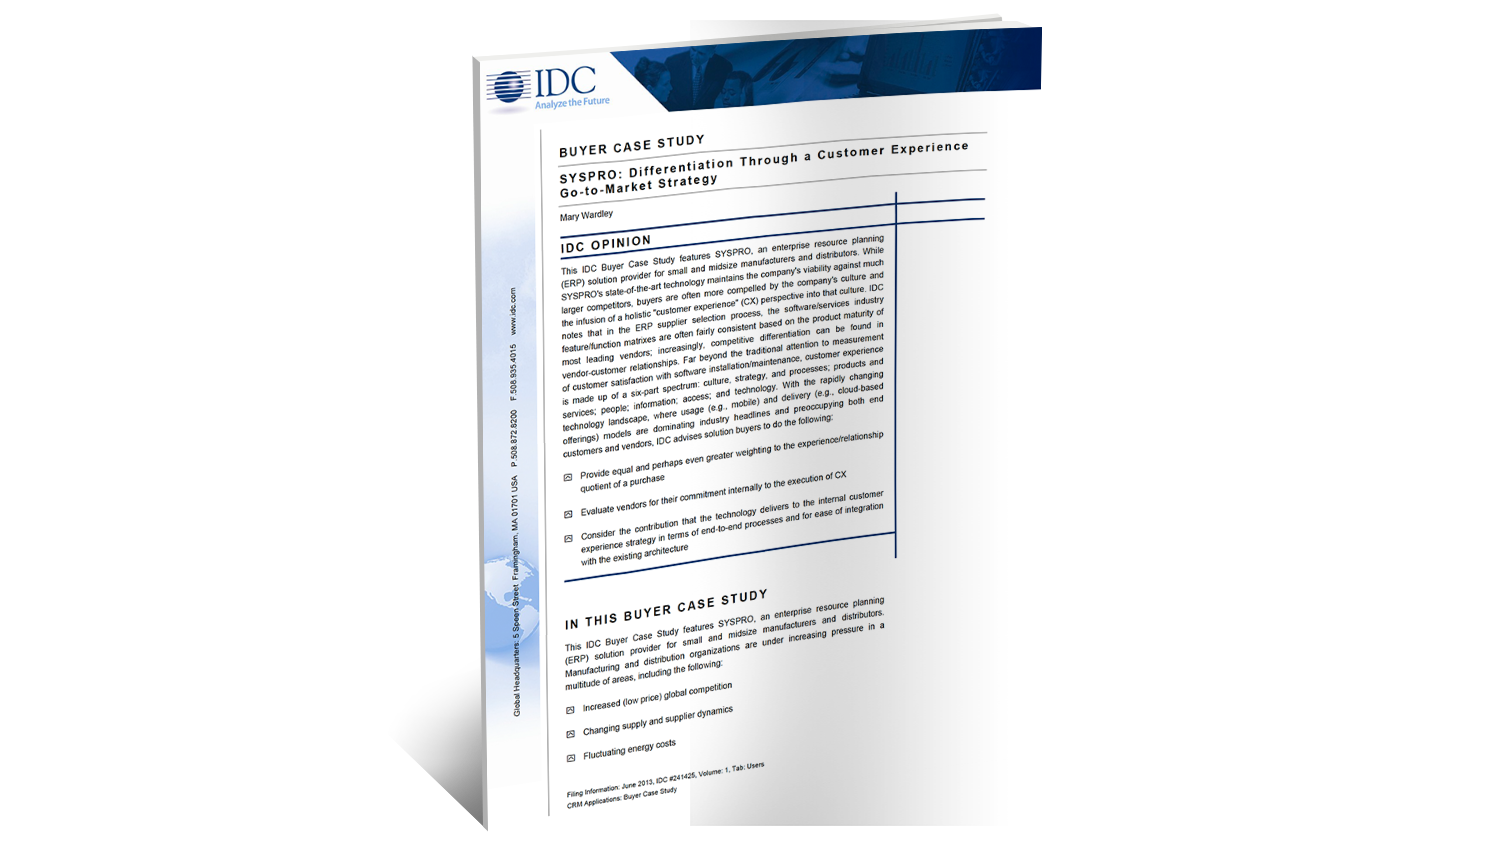 idc syspro case study customer experience analyst report